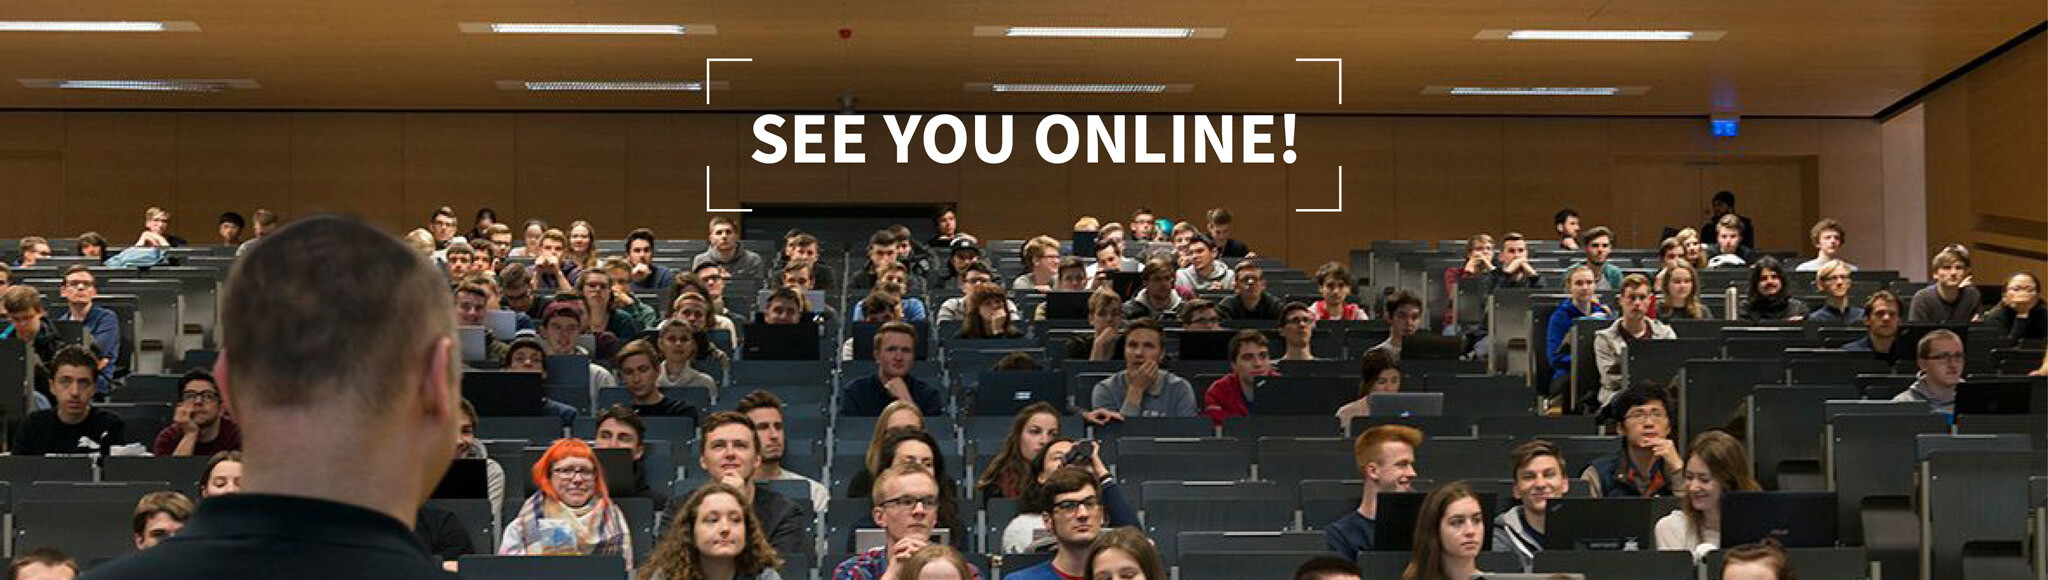 Picture of students in lecture hall with caption: See you online!